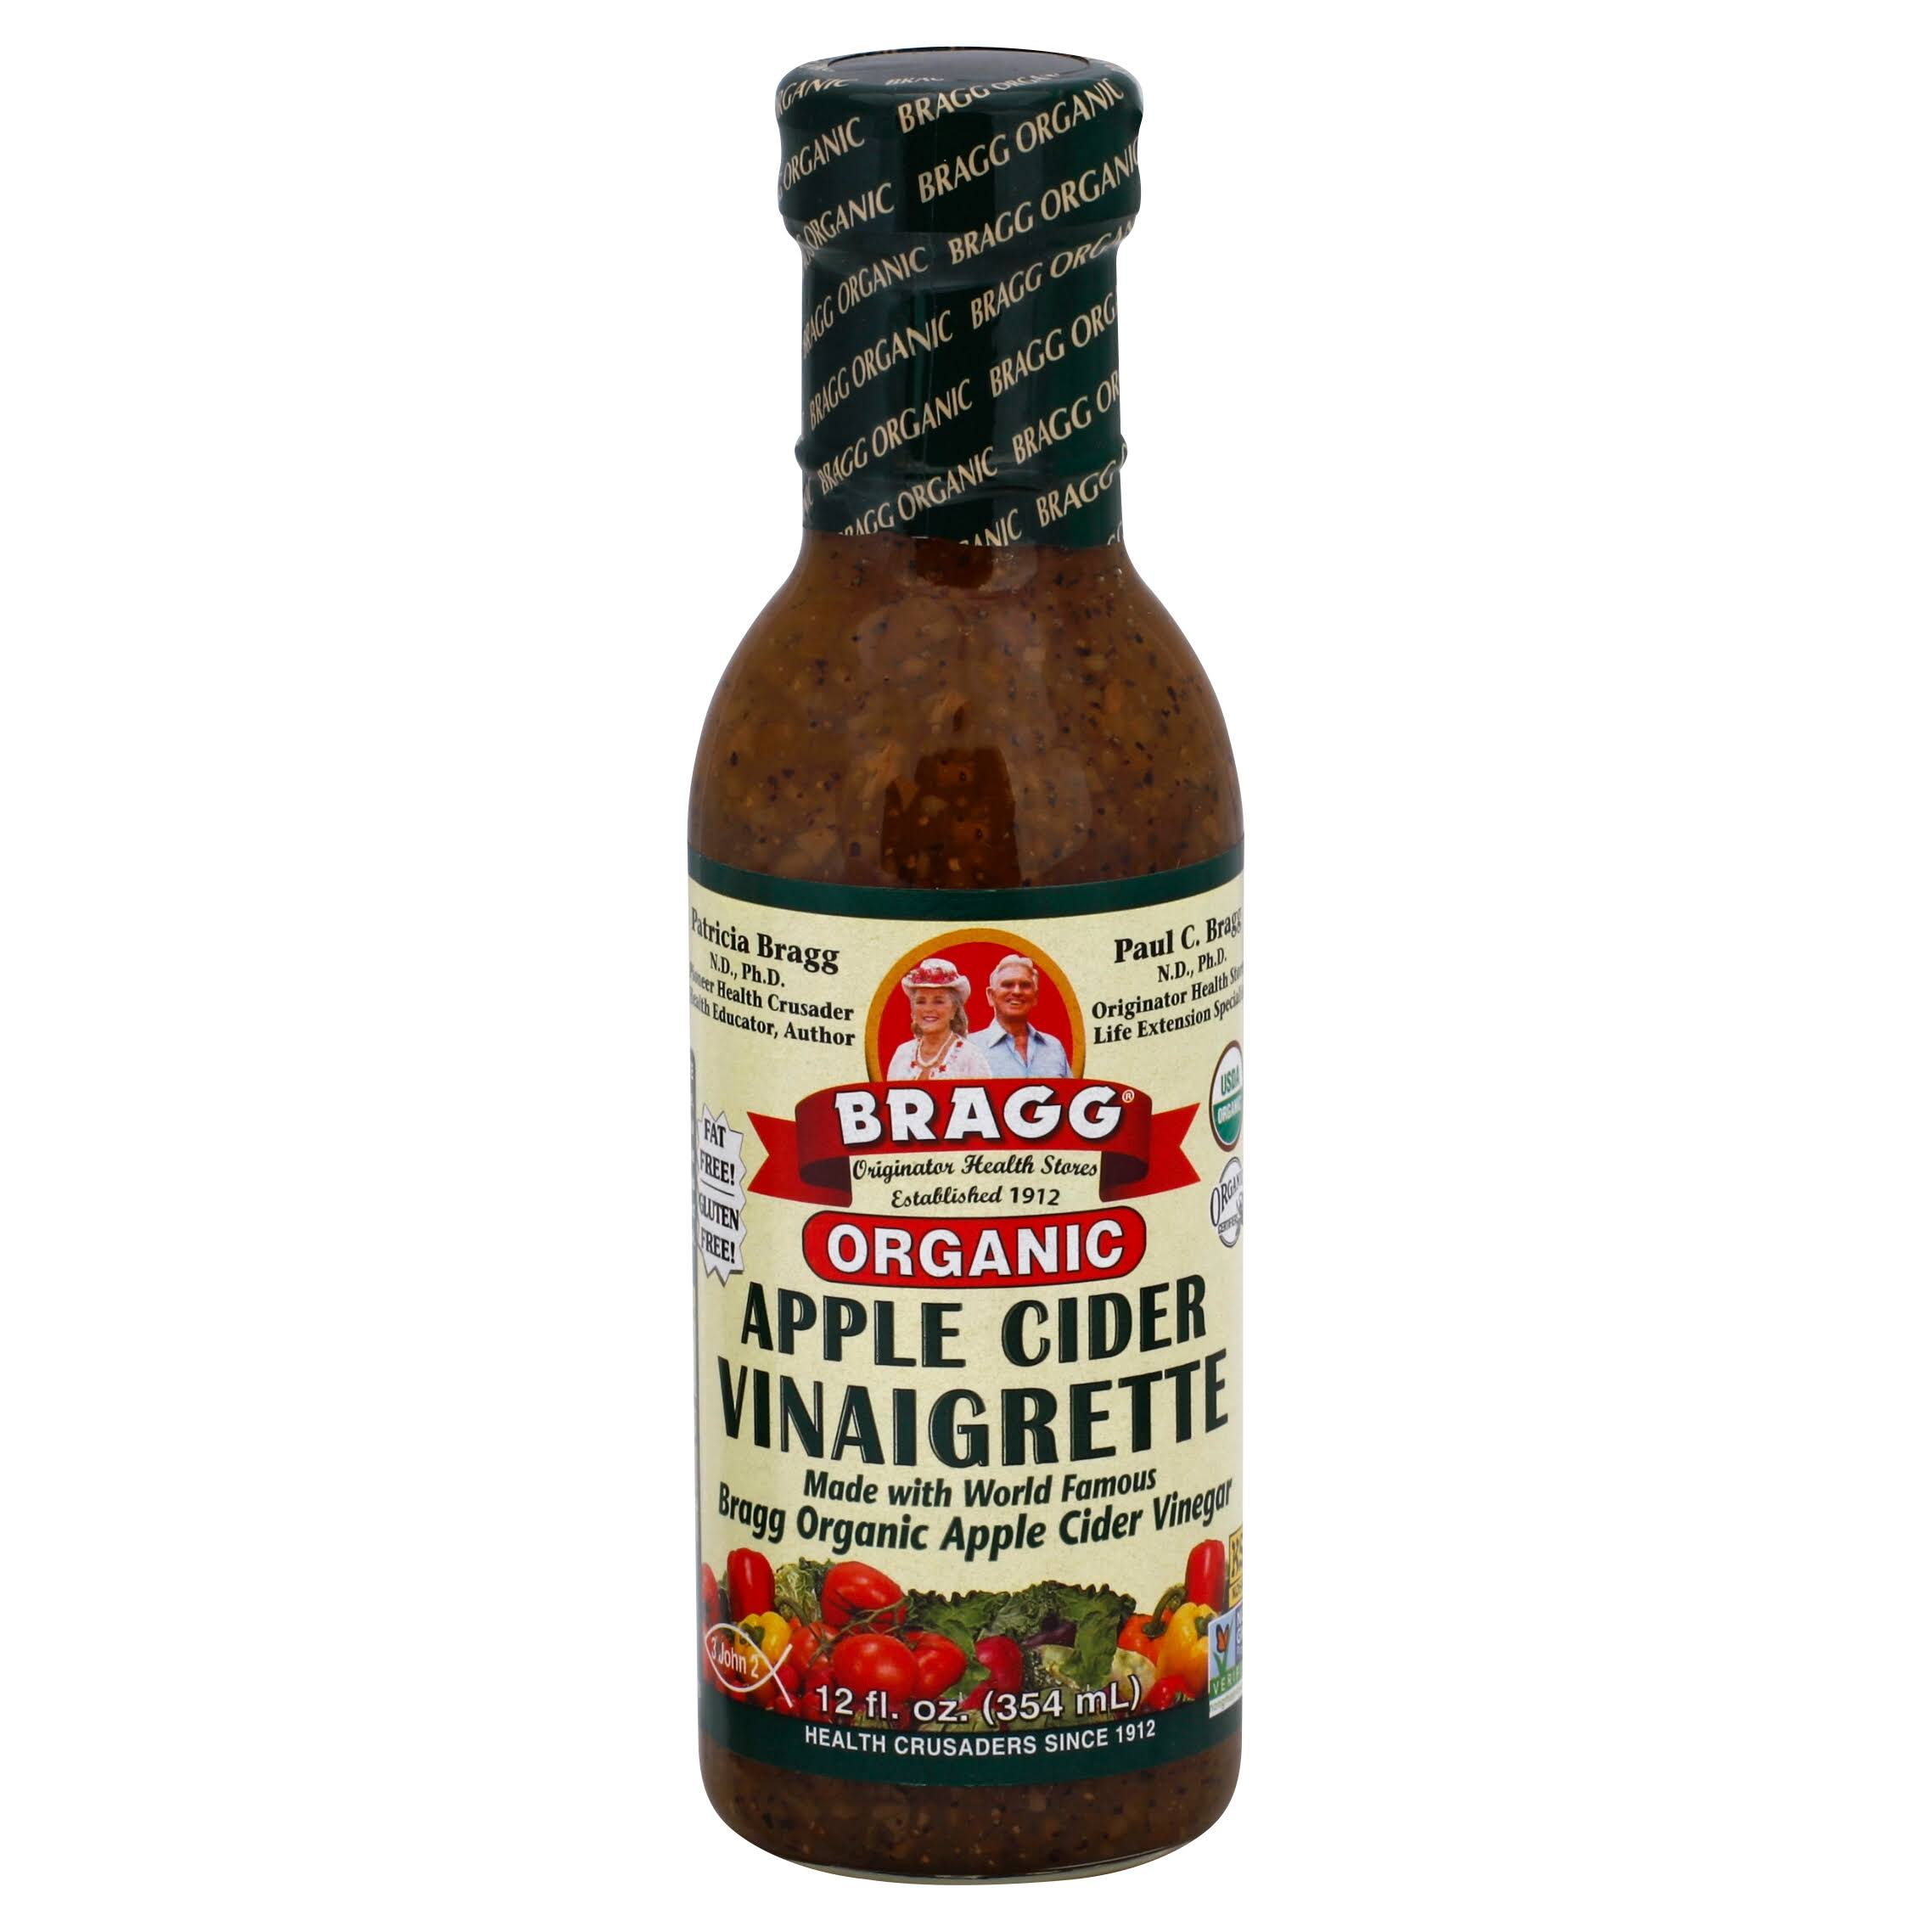 Bragg Organic Apple Cider Vinaigrette Dressing - 12oz